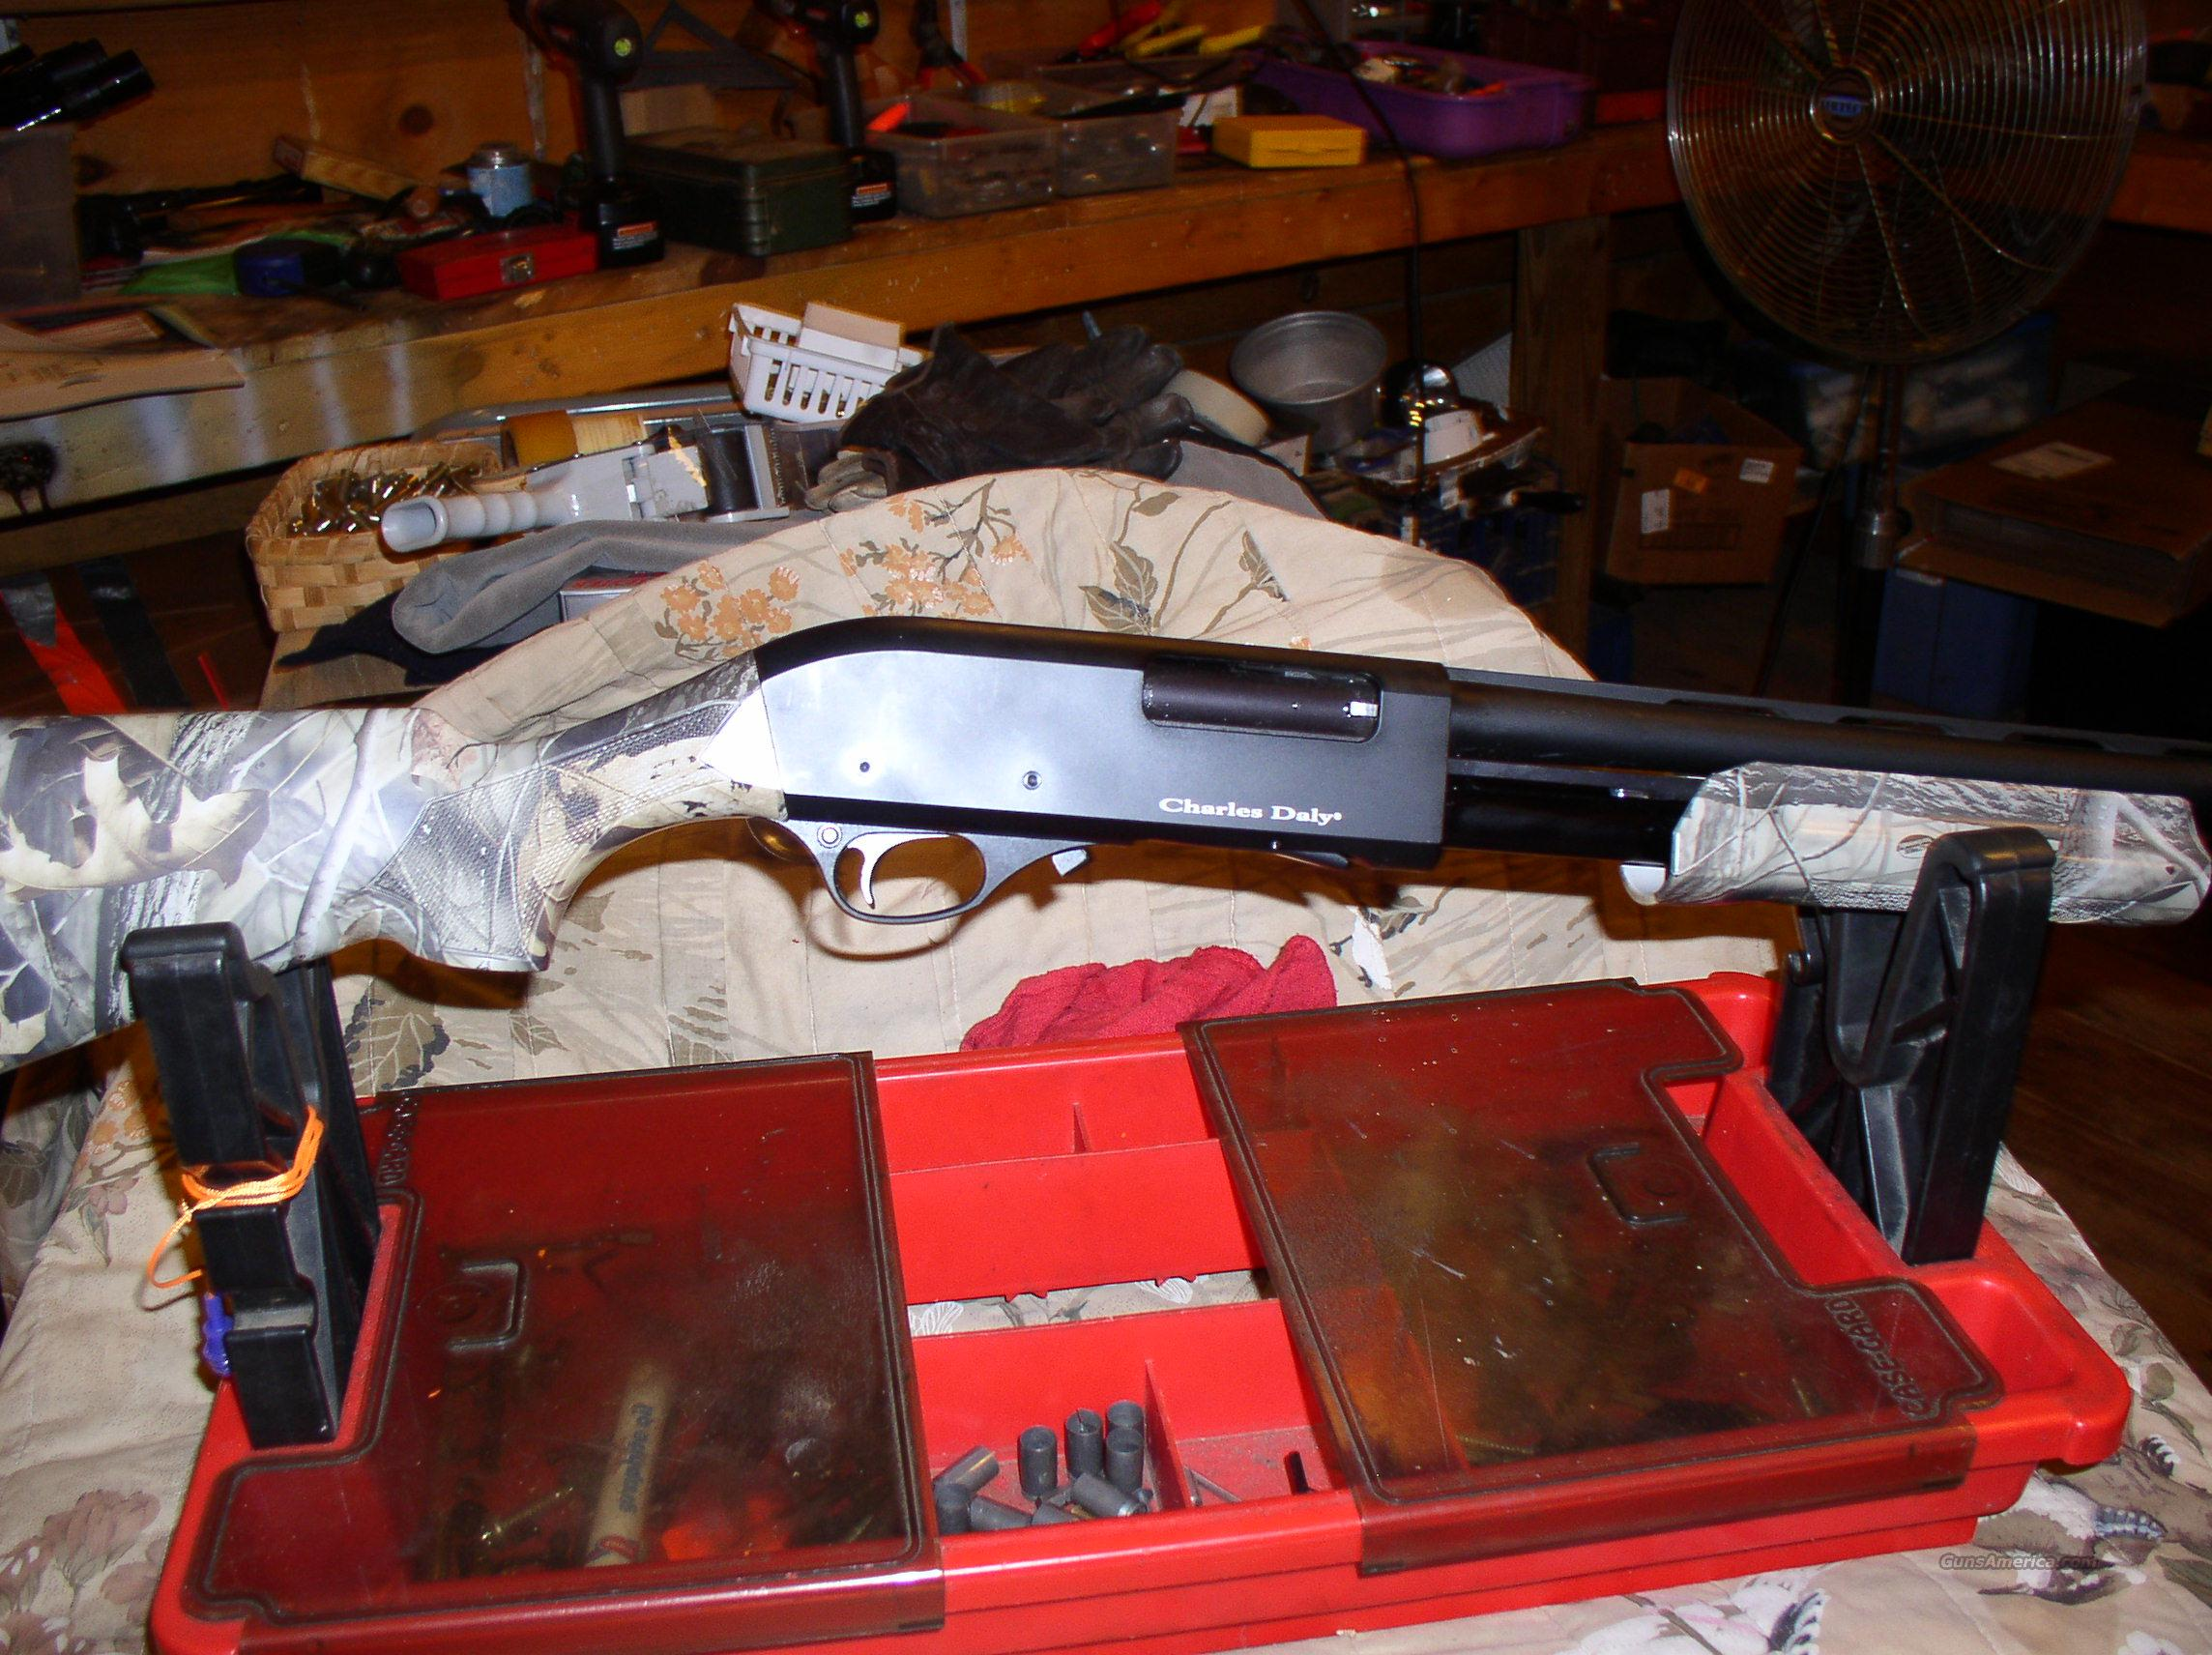 CHARLES DALY   20 GAUGE YOUTH PUMP  Guns > Shotguns > Charles Daly Shotguns > Auto